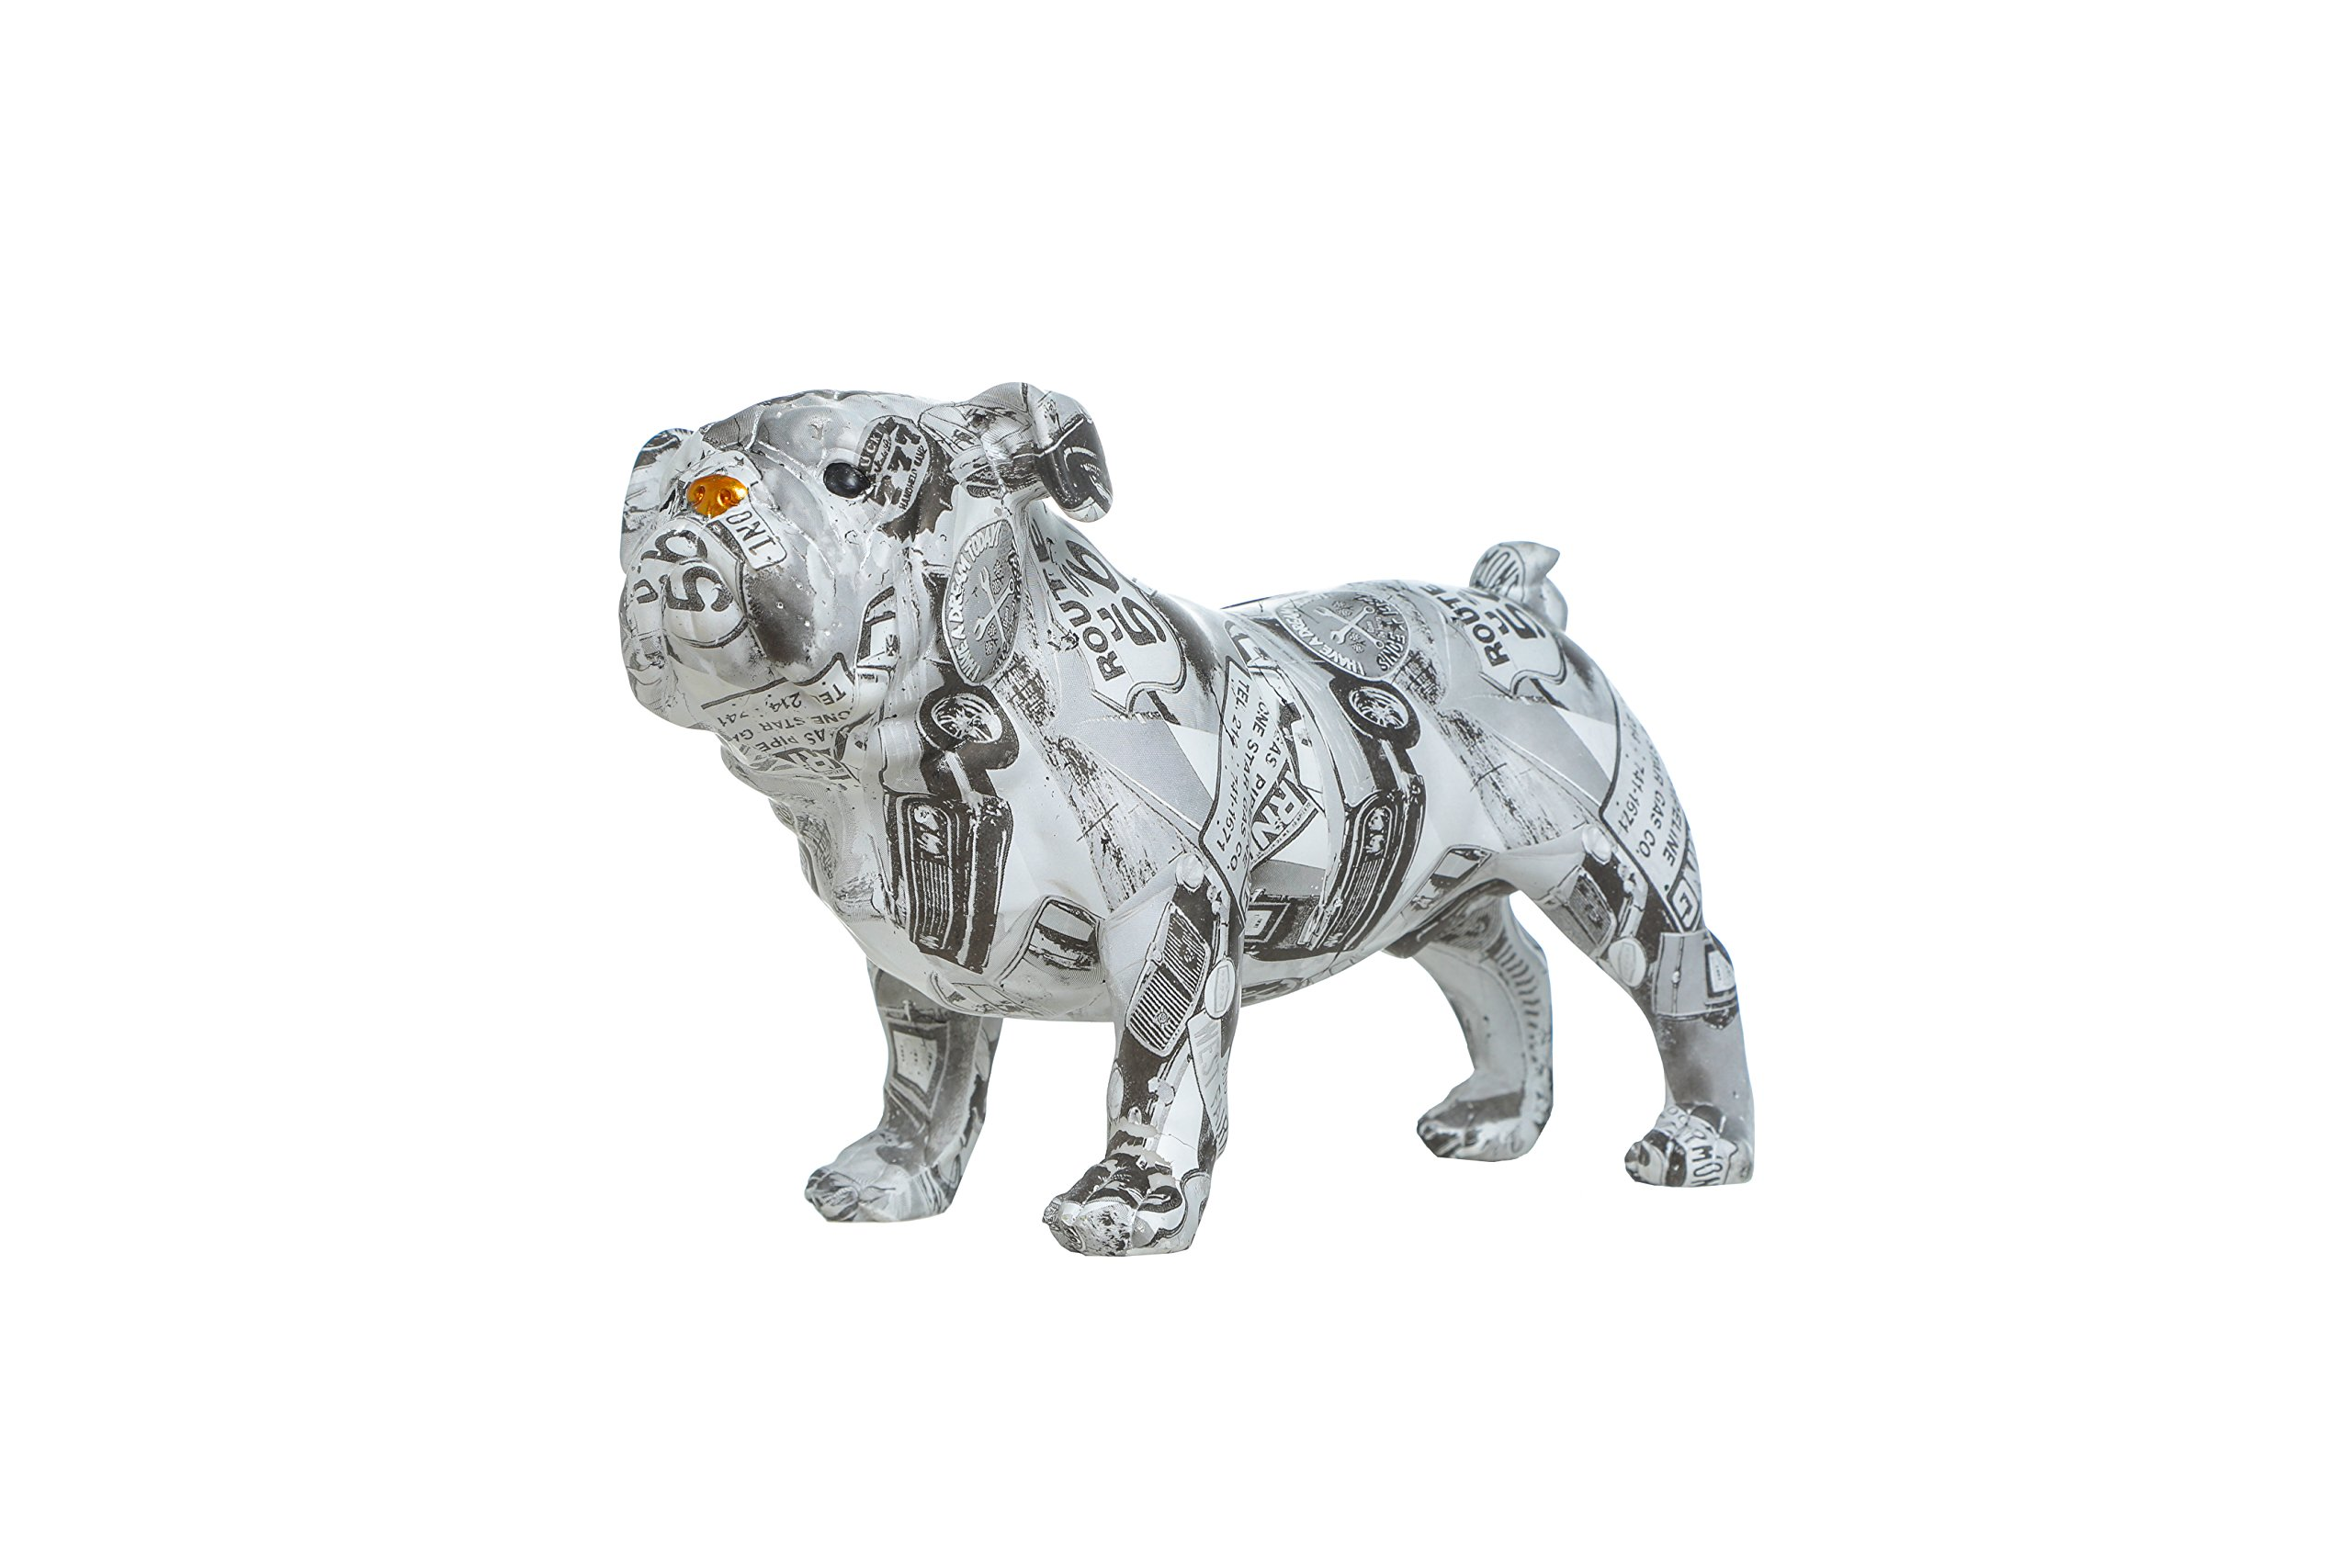 Interior Illusions Plus ii00411 Piggy, Coin Bank, Home Décor, Black/White/Gold by Interior Illusions Plus (Image #1)